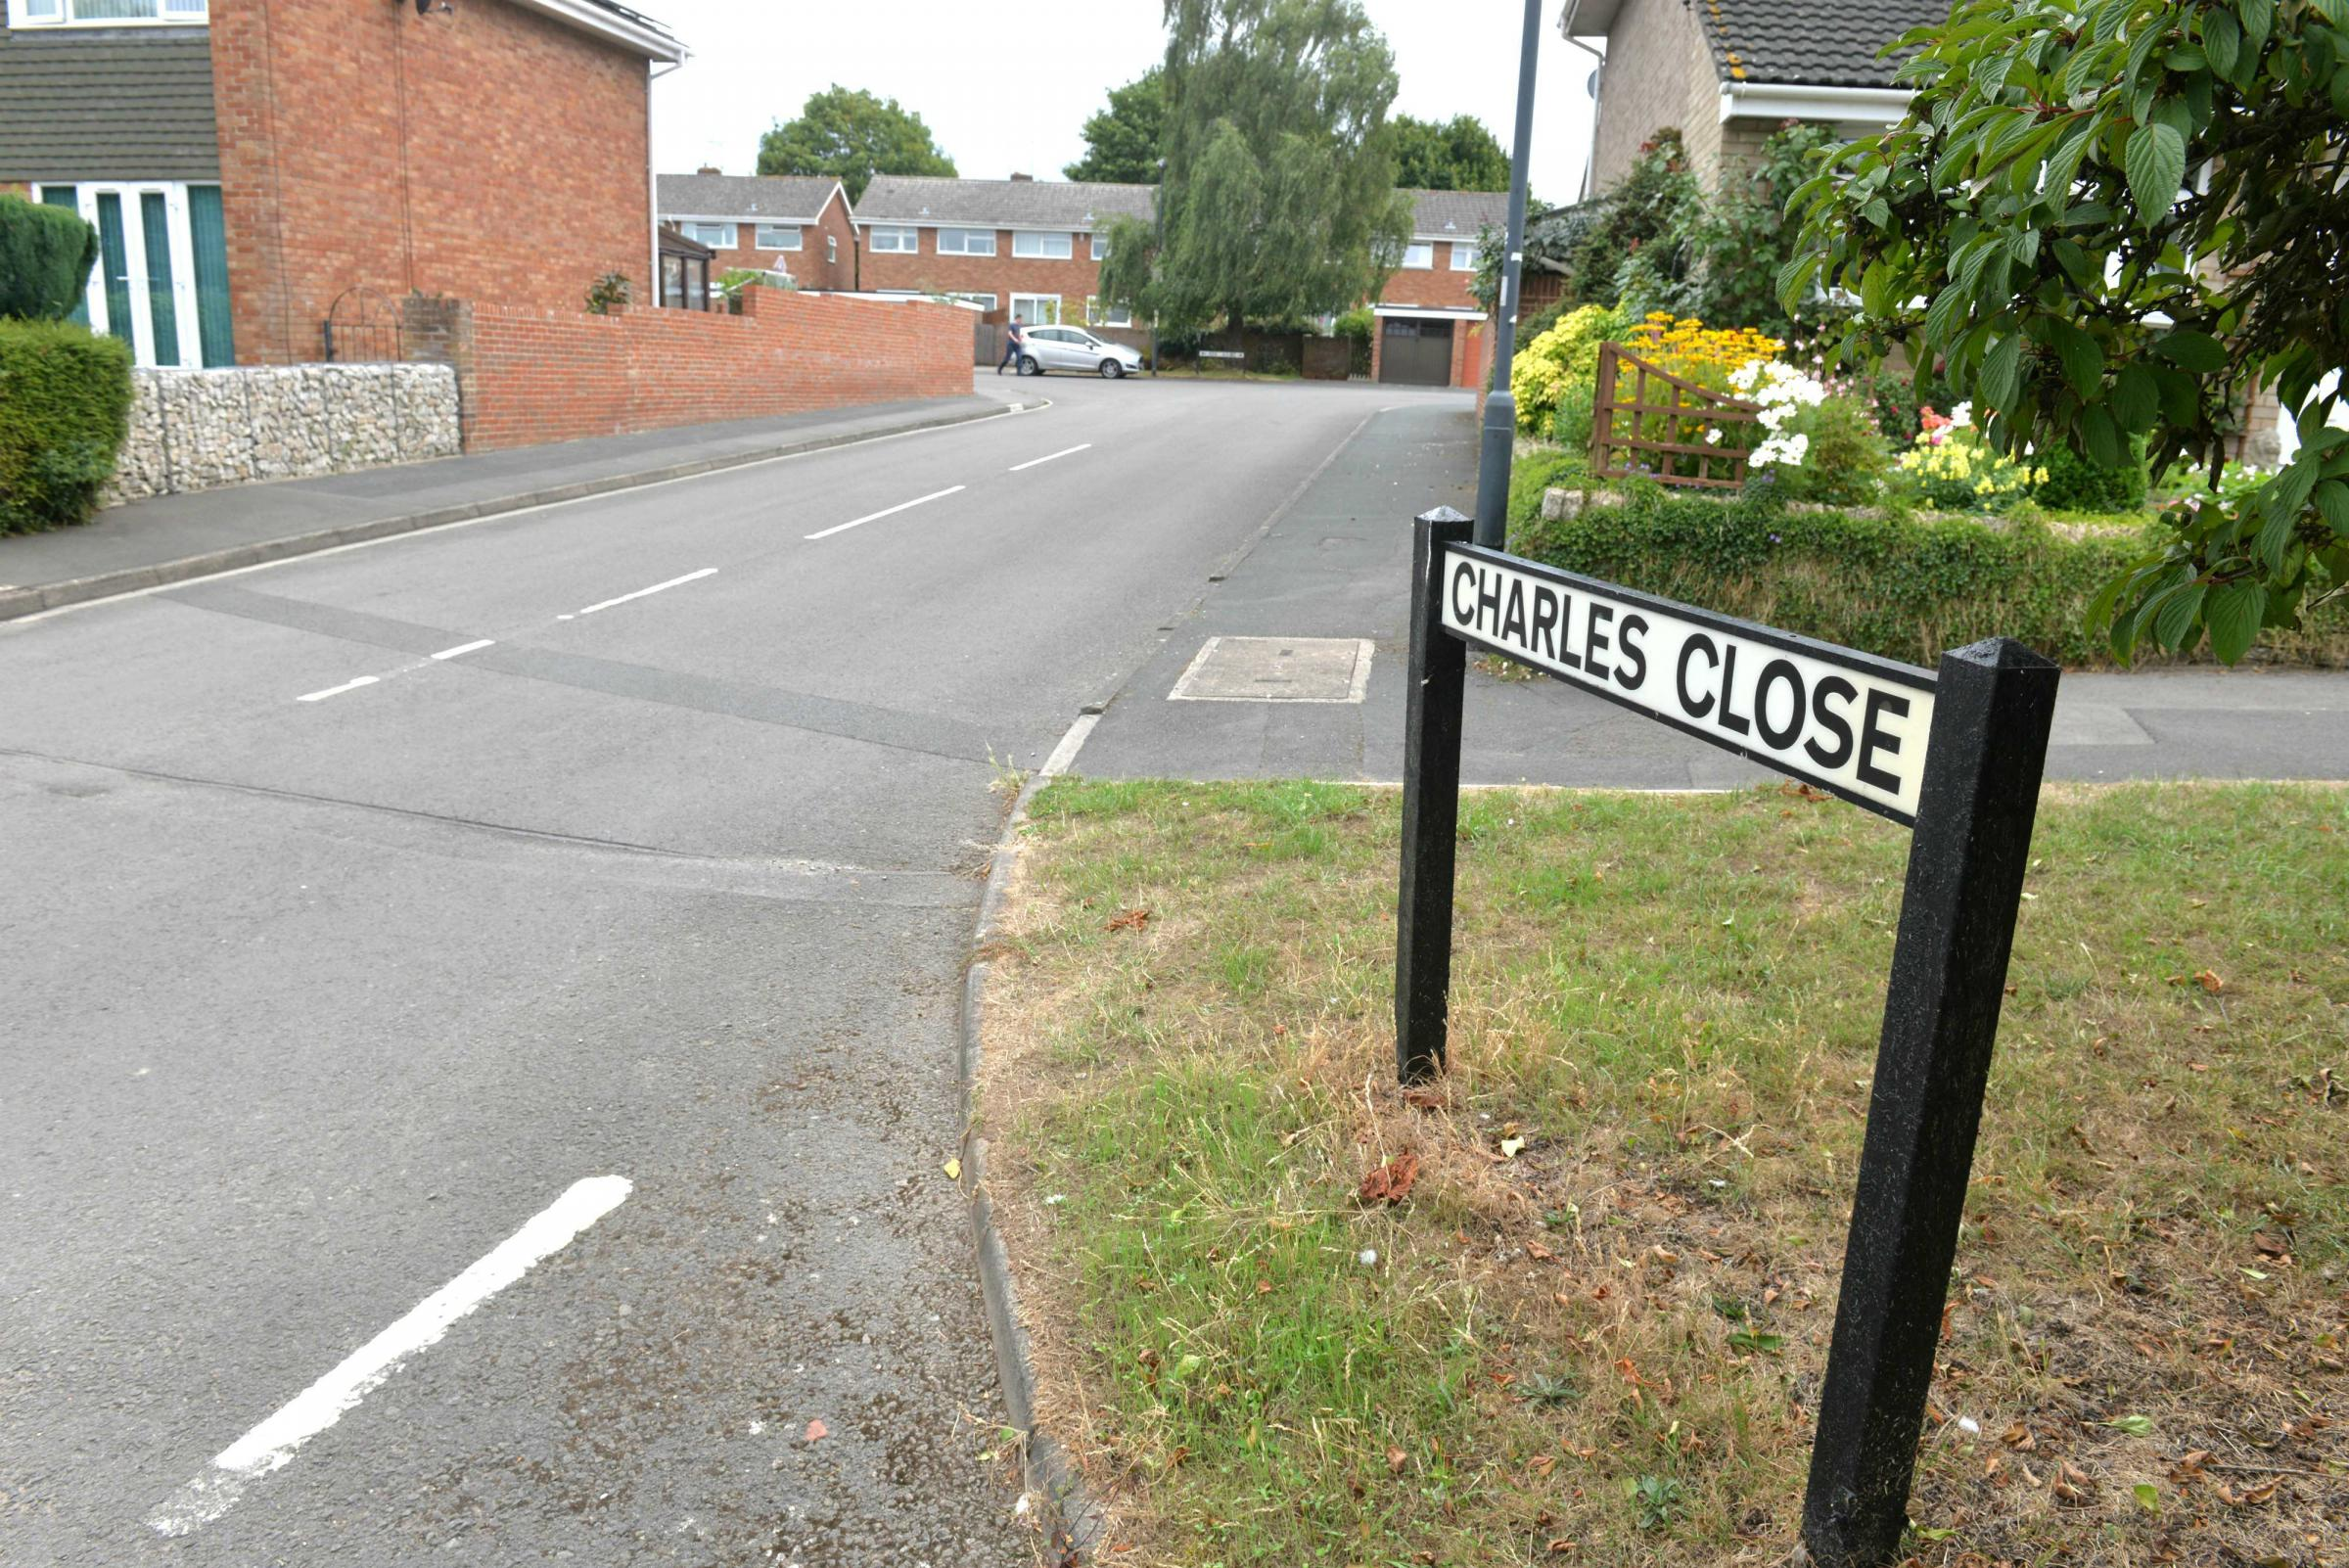 Charles Close in Thornbury is one of the streets hit by vandals. Photo: Steve Richards.